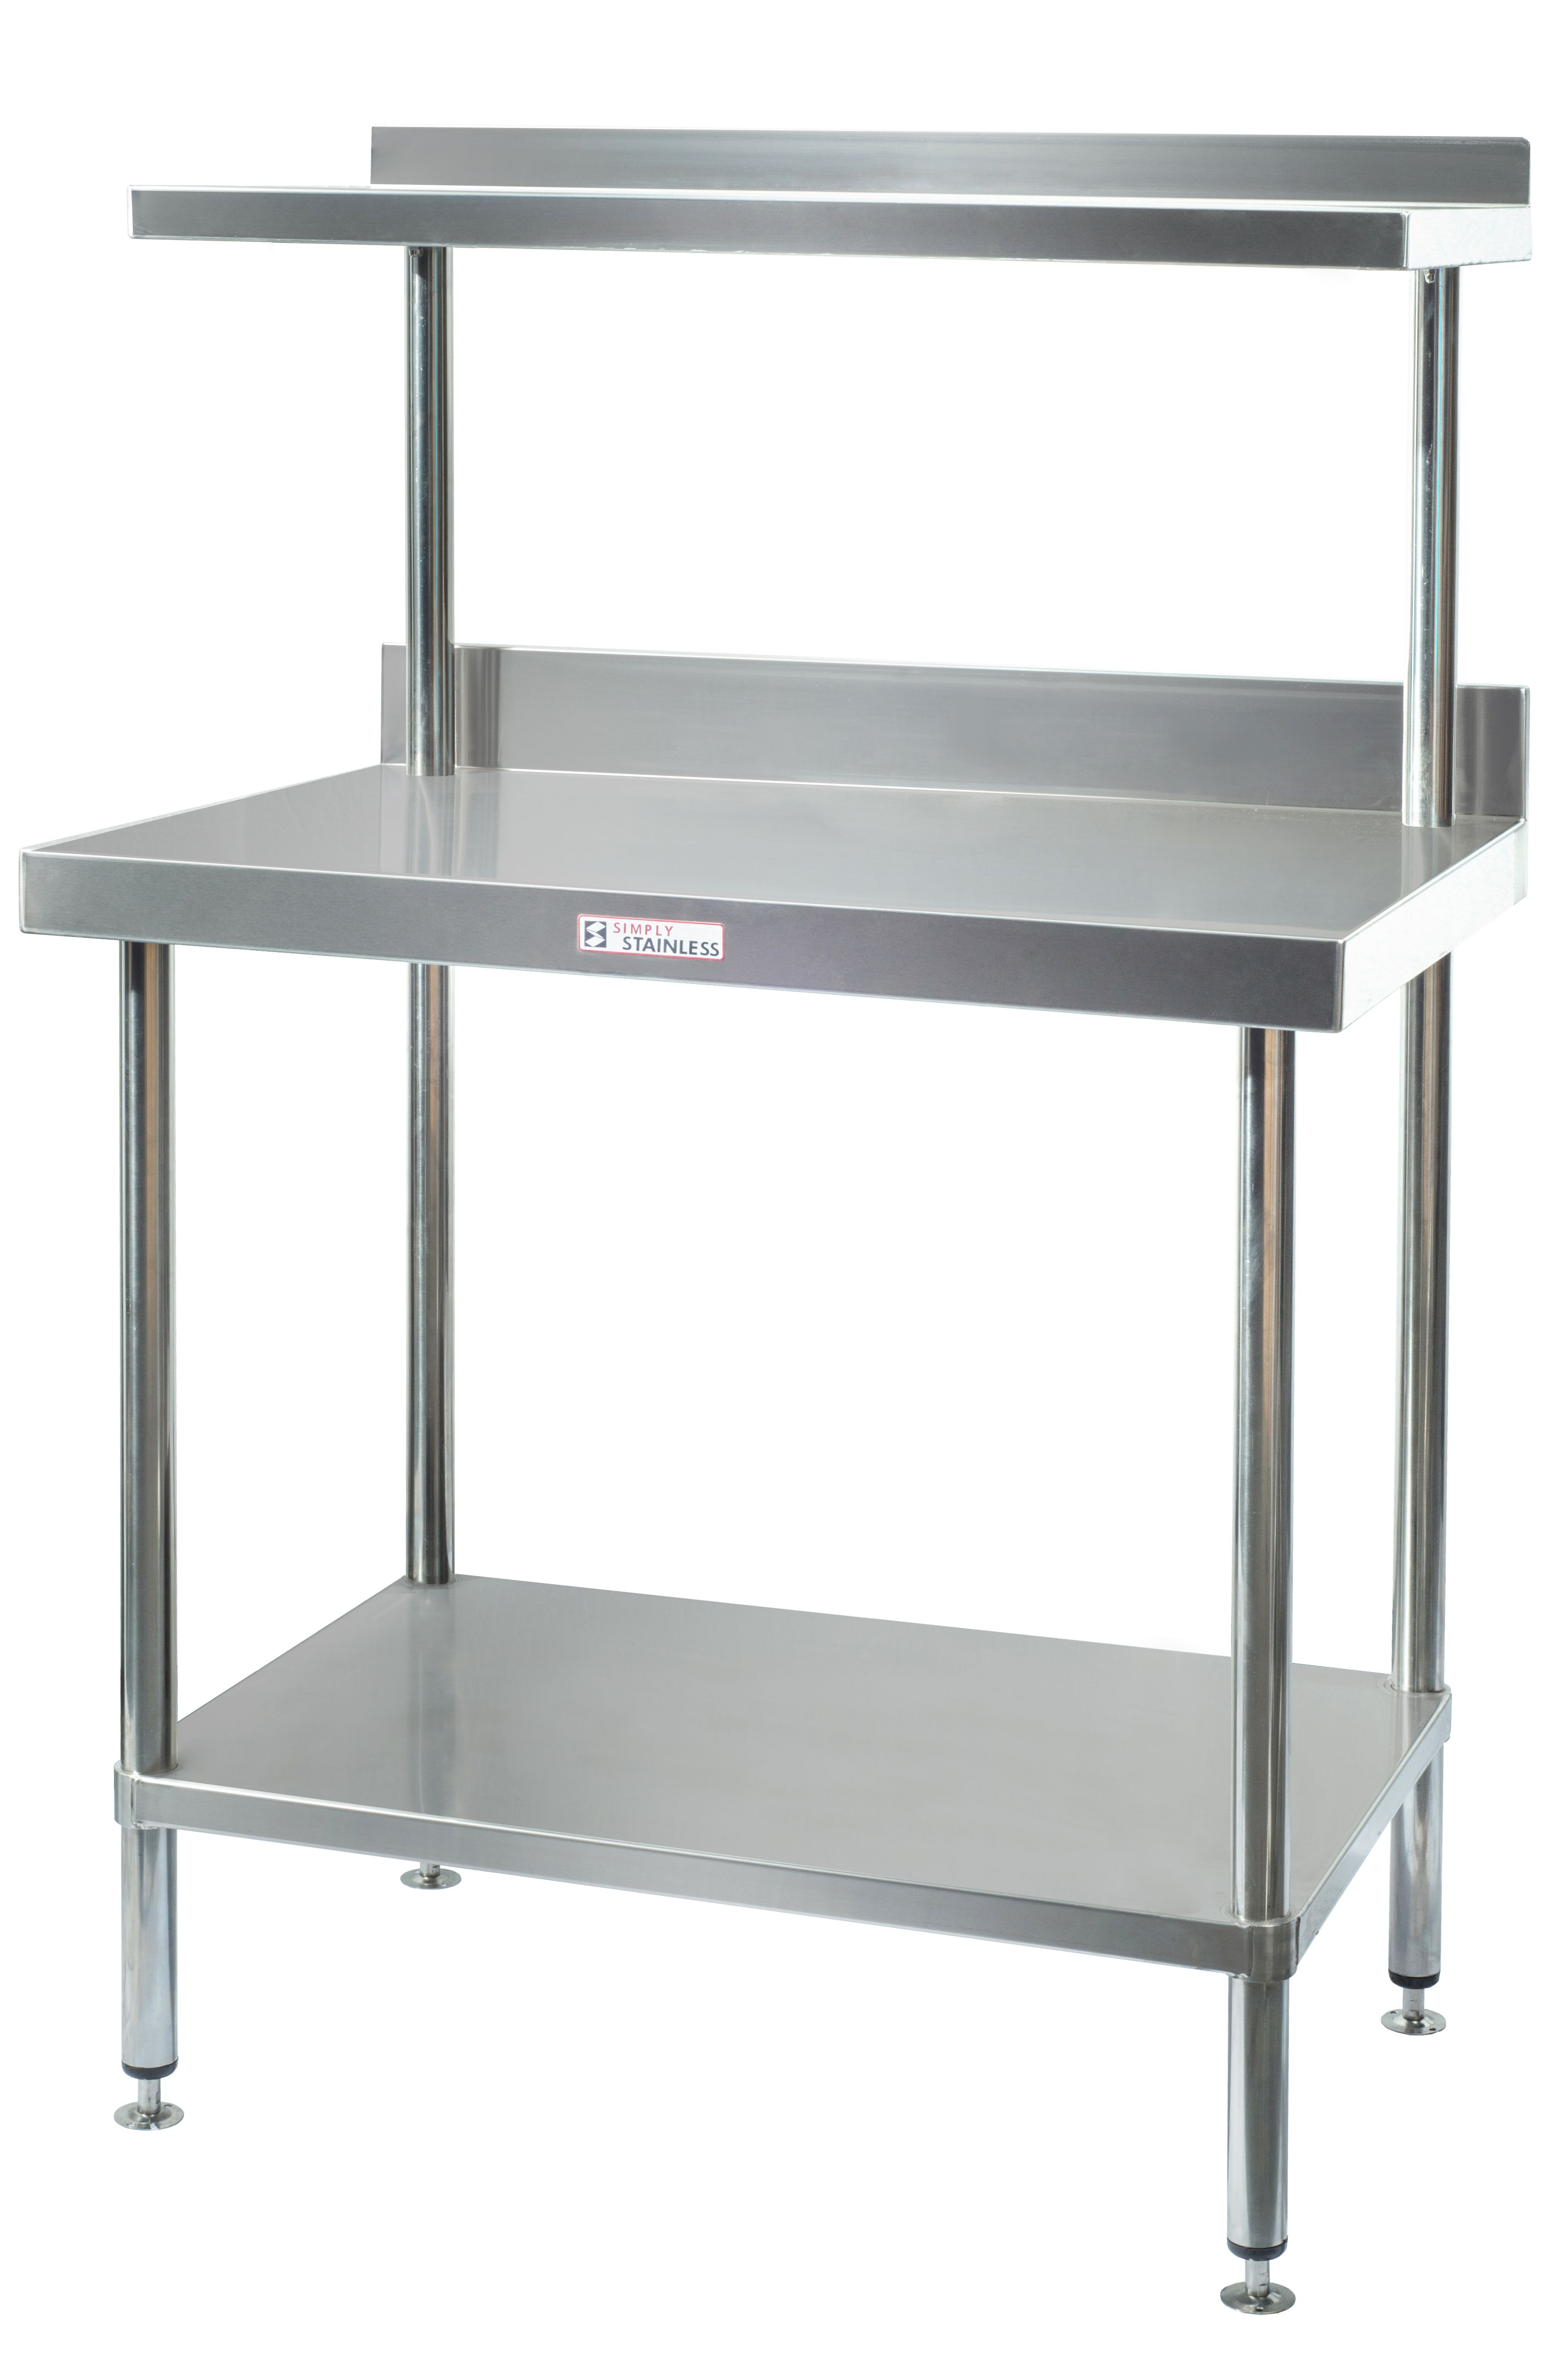 Simply Stainless Ss180900 Salamander Bench Commercial Kitchen Equipment Funeral Homes Prep Work